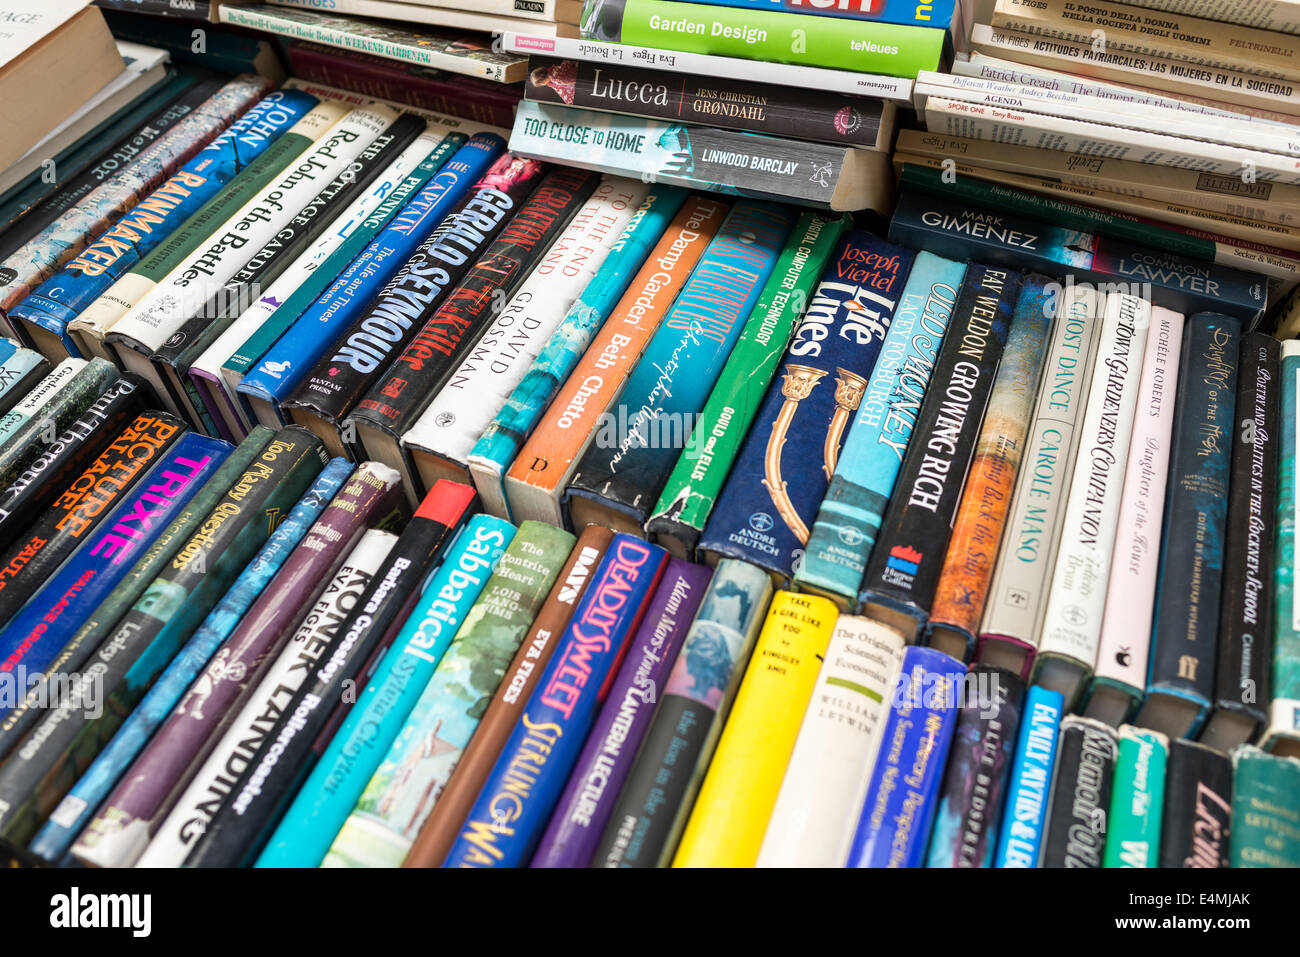 Second hand books on sale - Stock Image